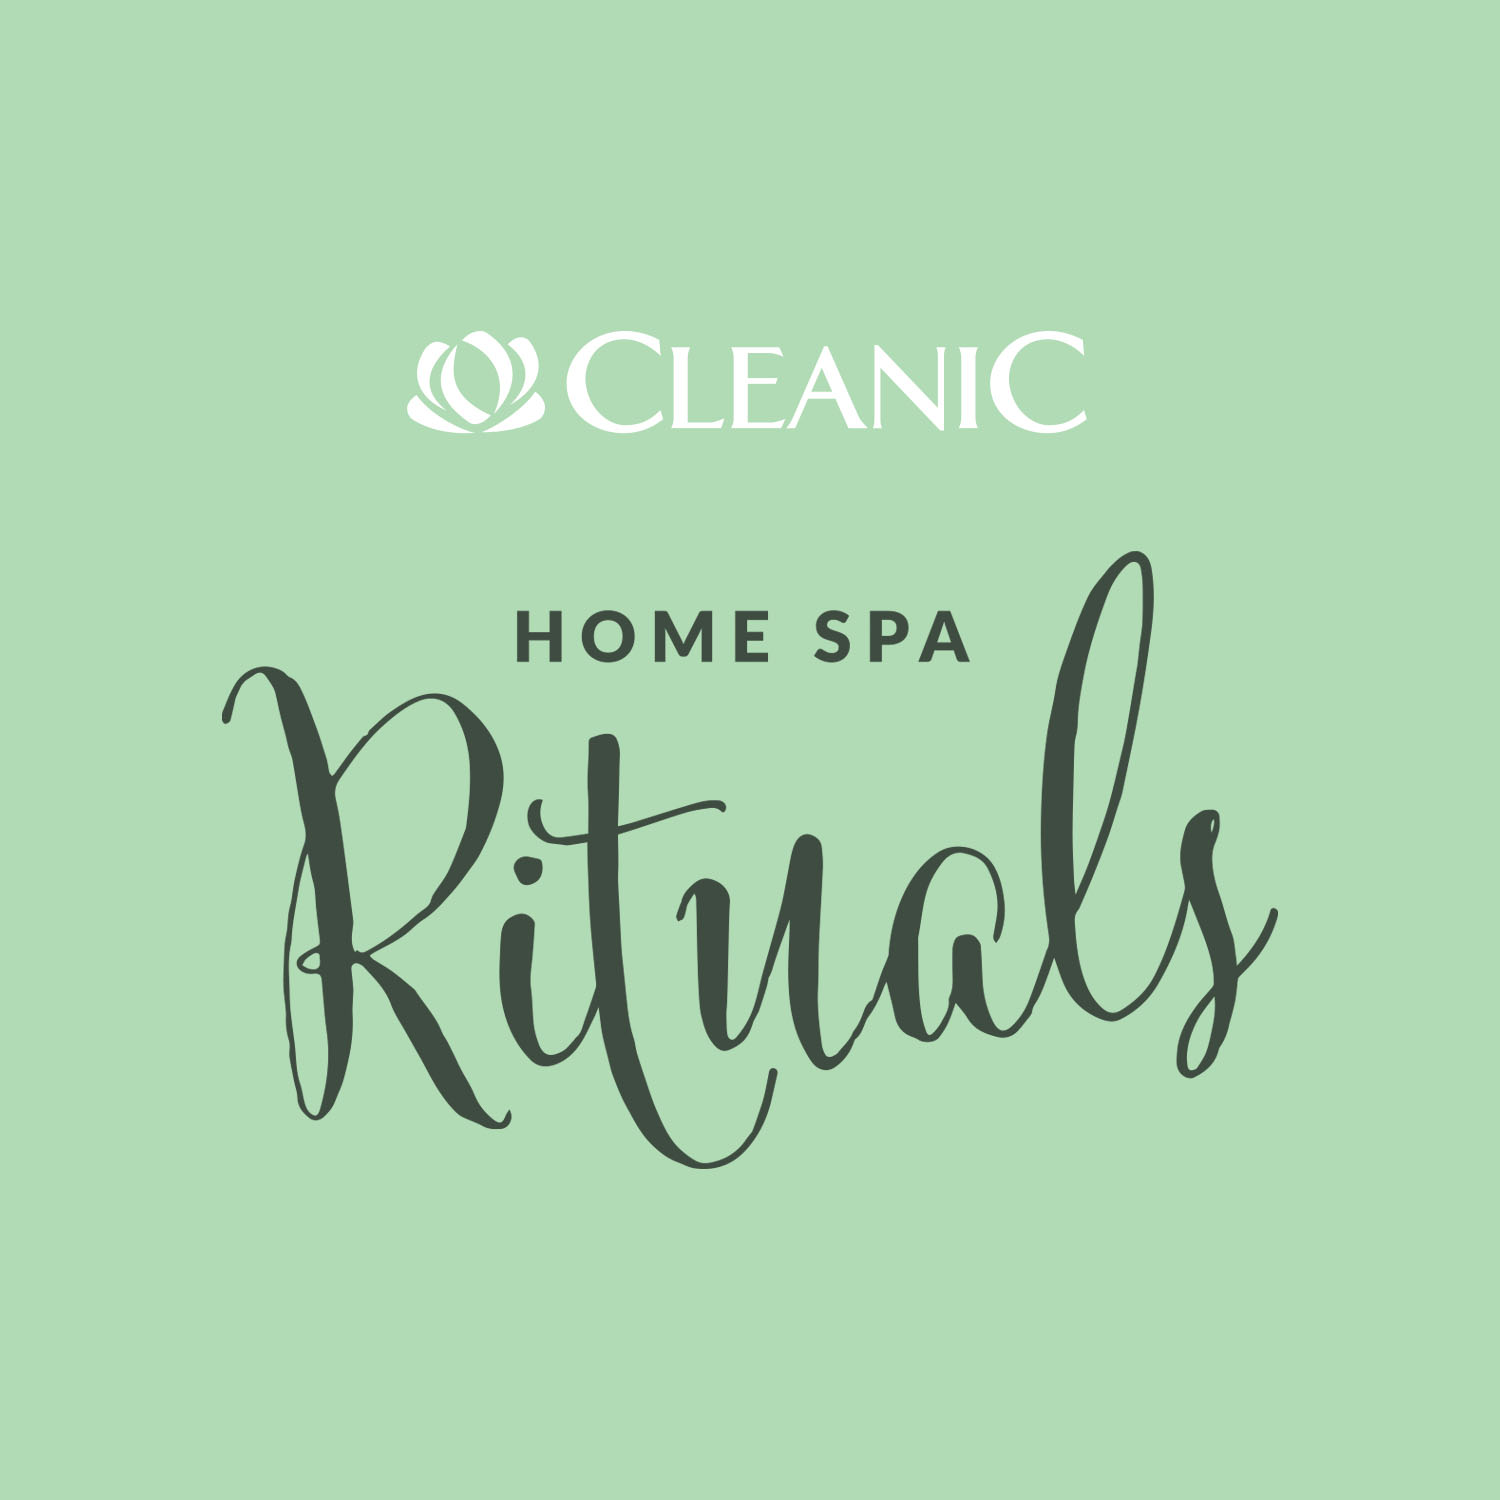 02_Cleanic_SPA_logo.jpg